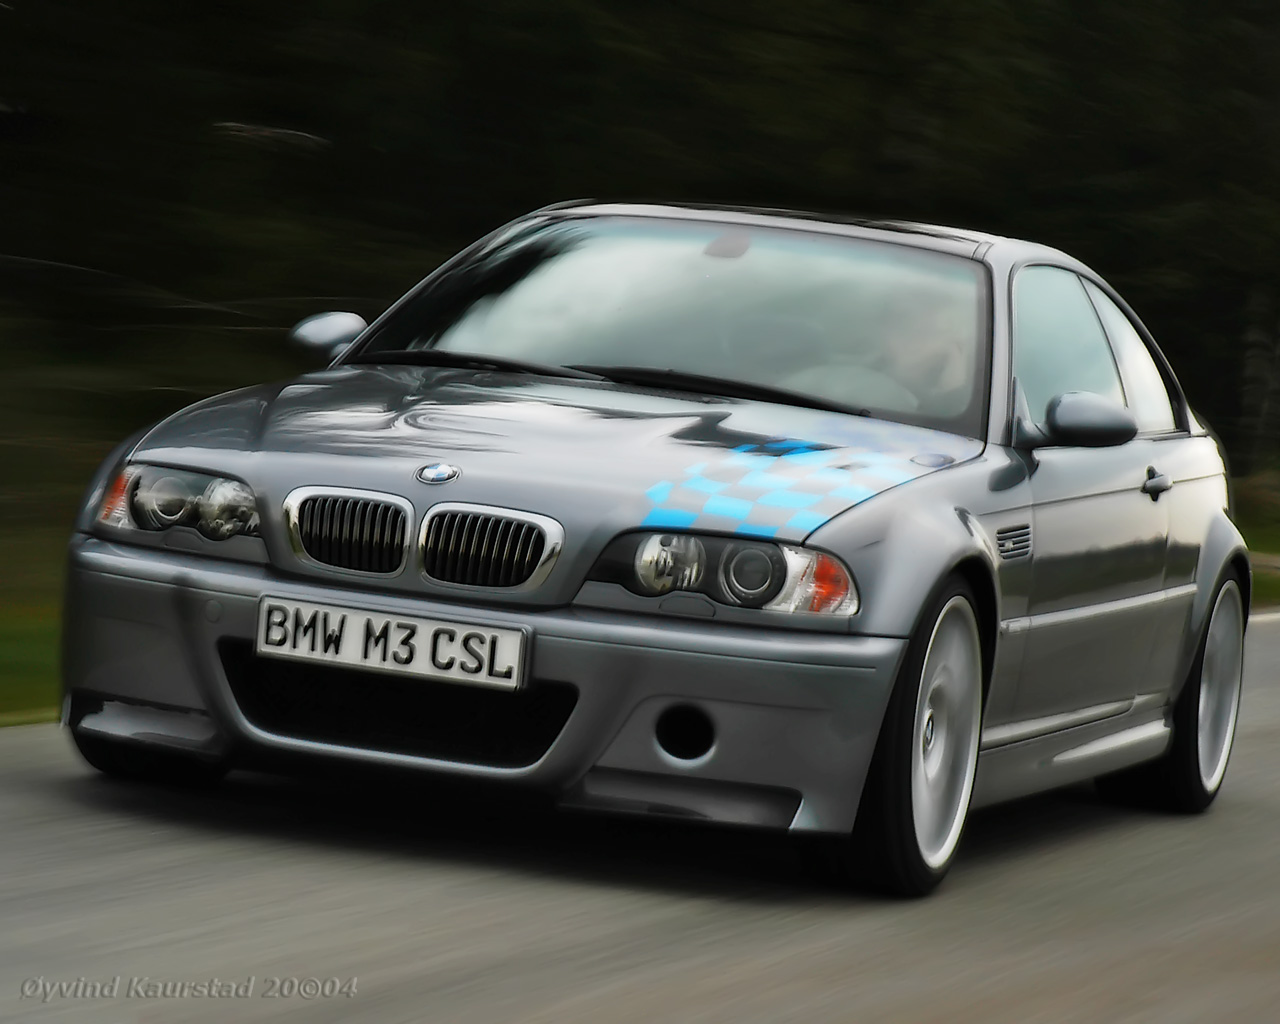 BMW M3 CSL Wallpaper